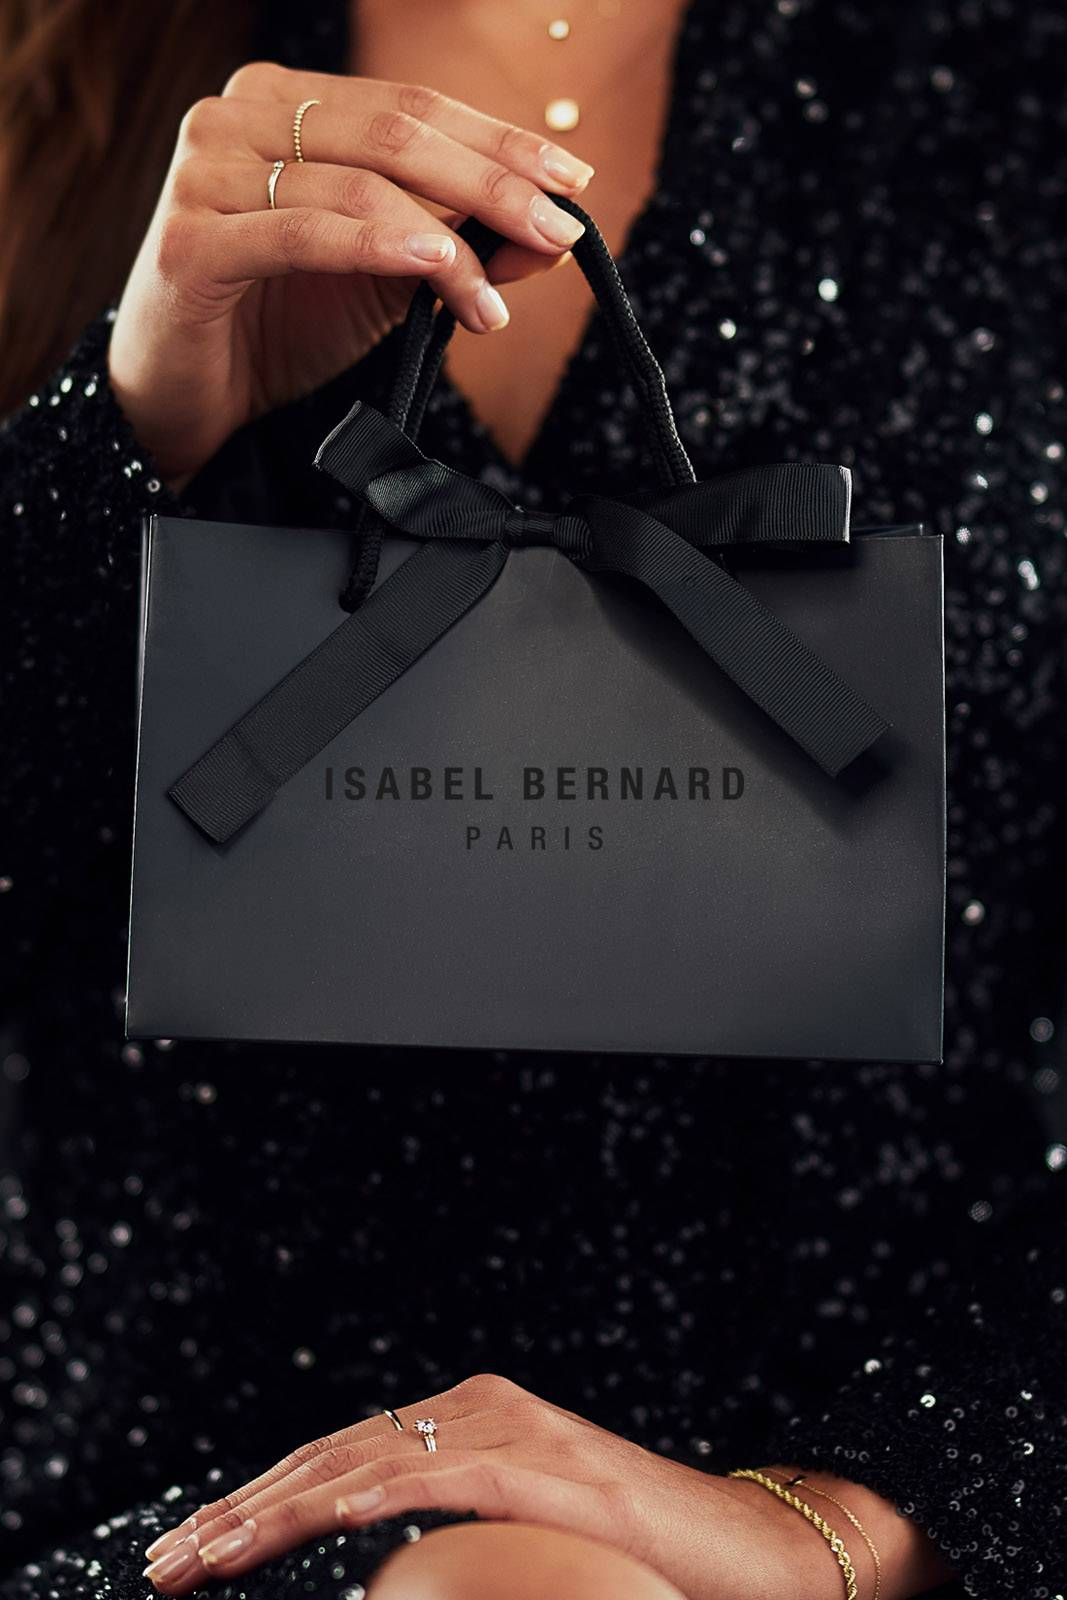 Isabel Bernard - Gold and silver jewellery for women